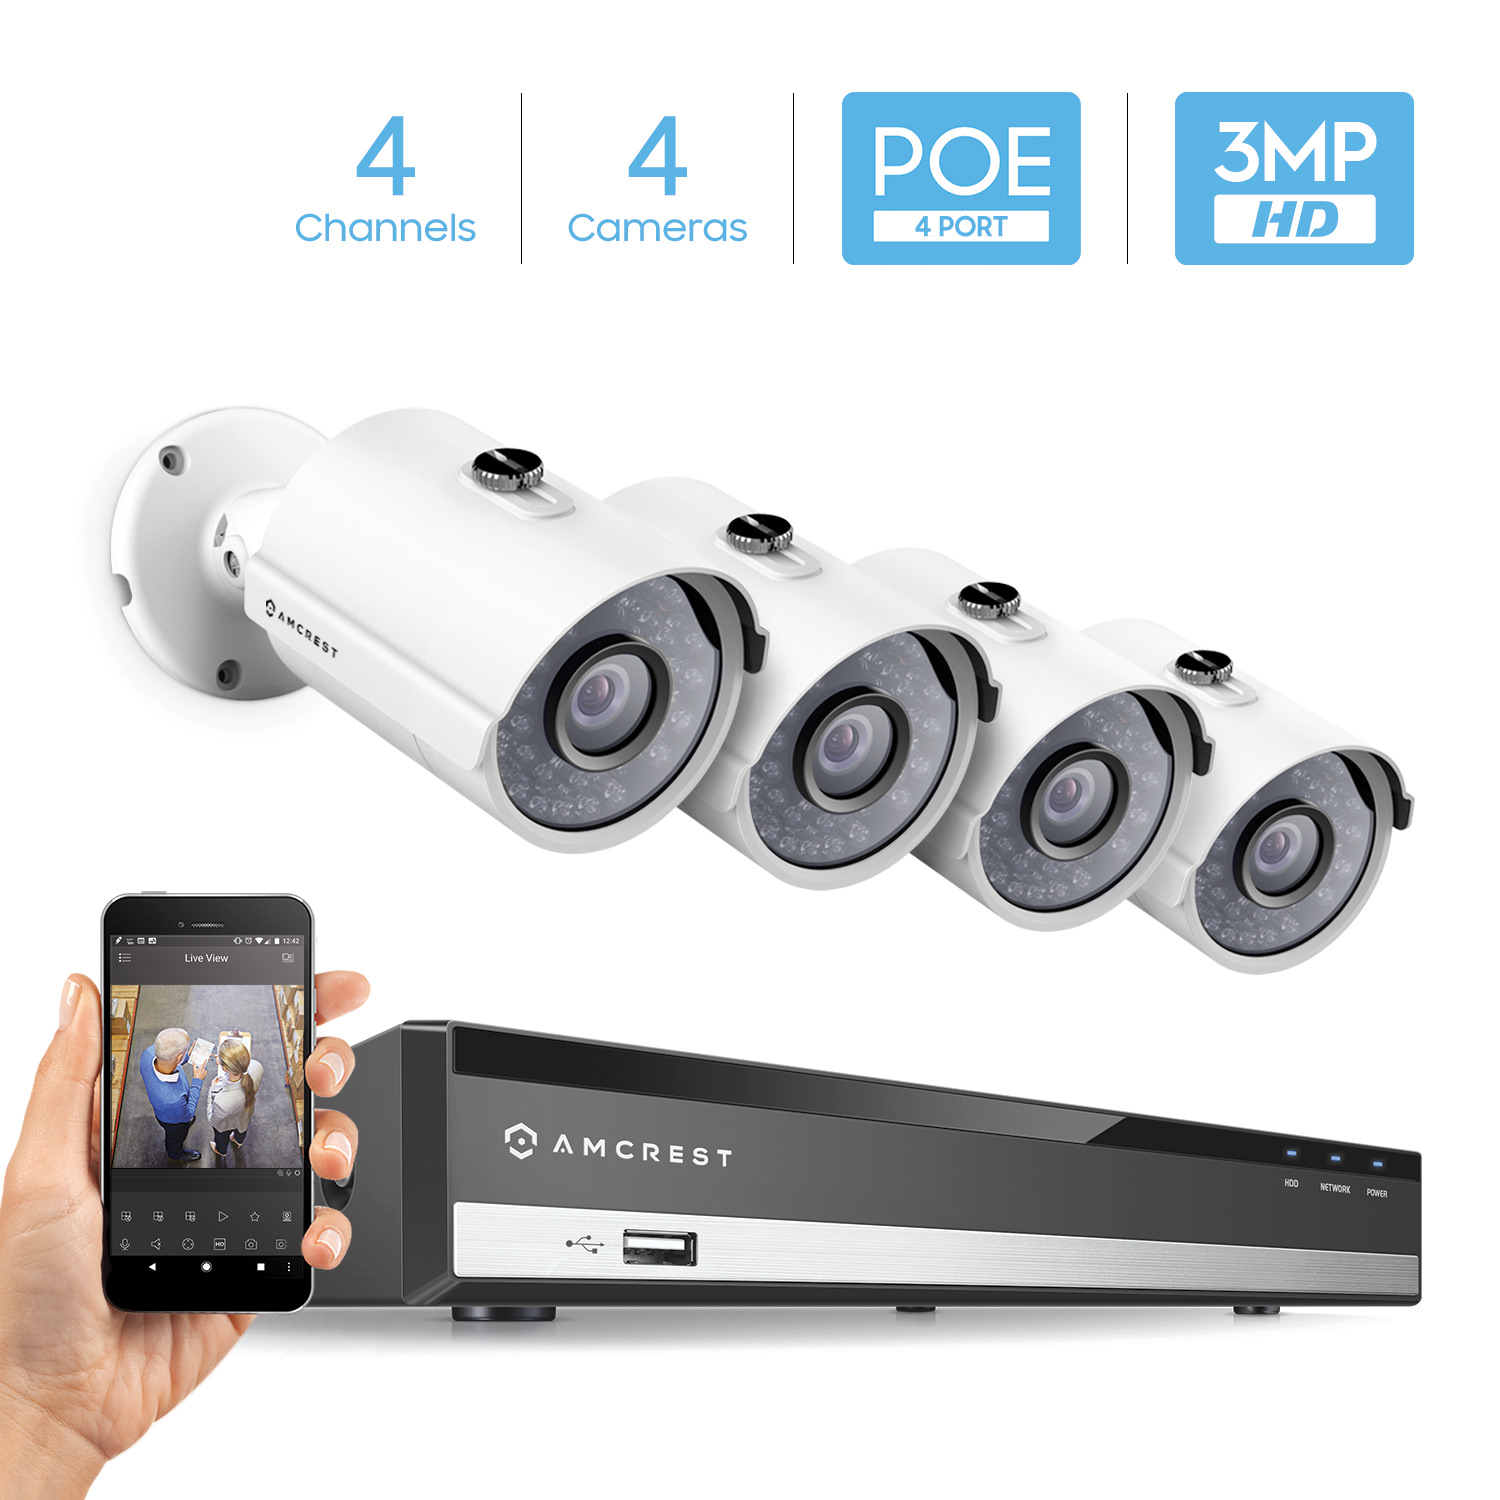 Amcrest 4CH Plug & Play H.265 6MP NVR 3MP 1536P Security Camera System, (4) x 3-Megapixel 81° Wide Field of View Weatherproof Metal Bullet PoE IP Cameras, 98 Feet Night Vision (White)